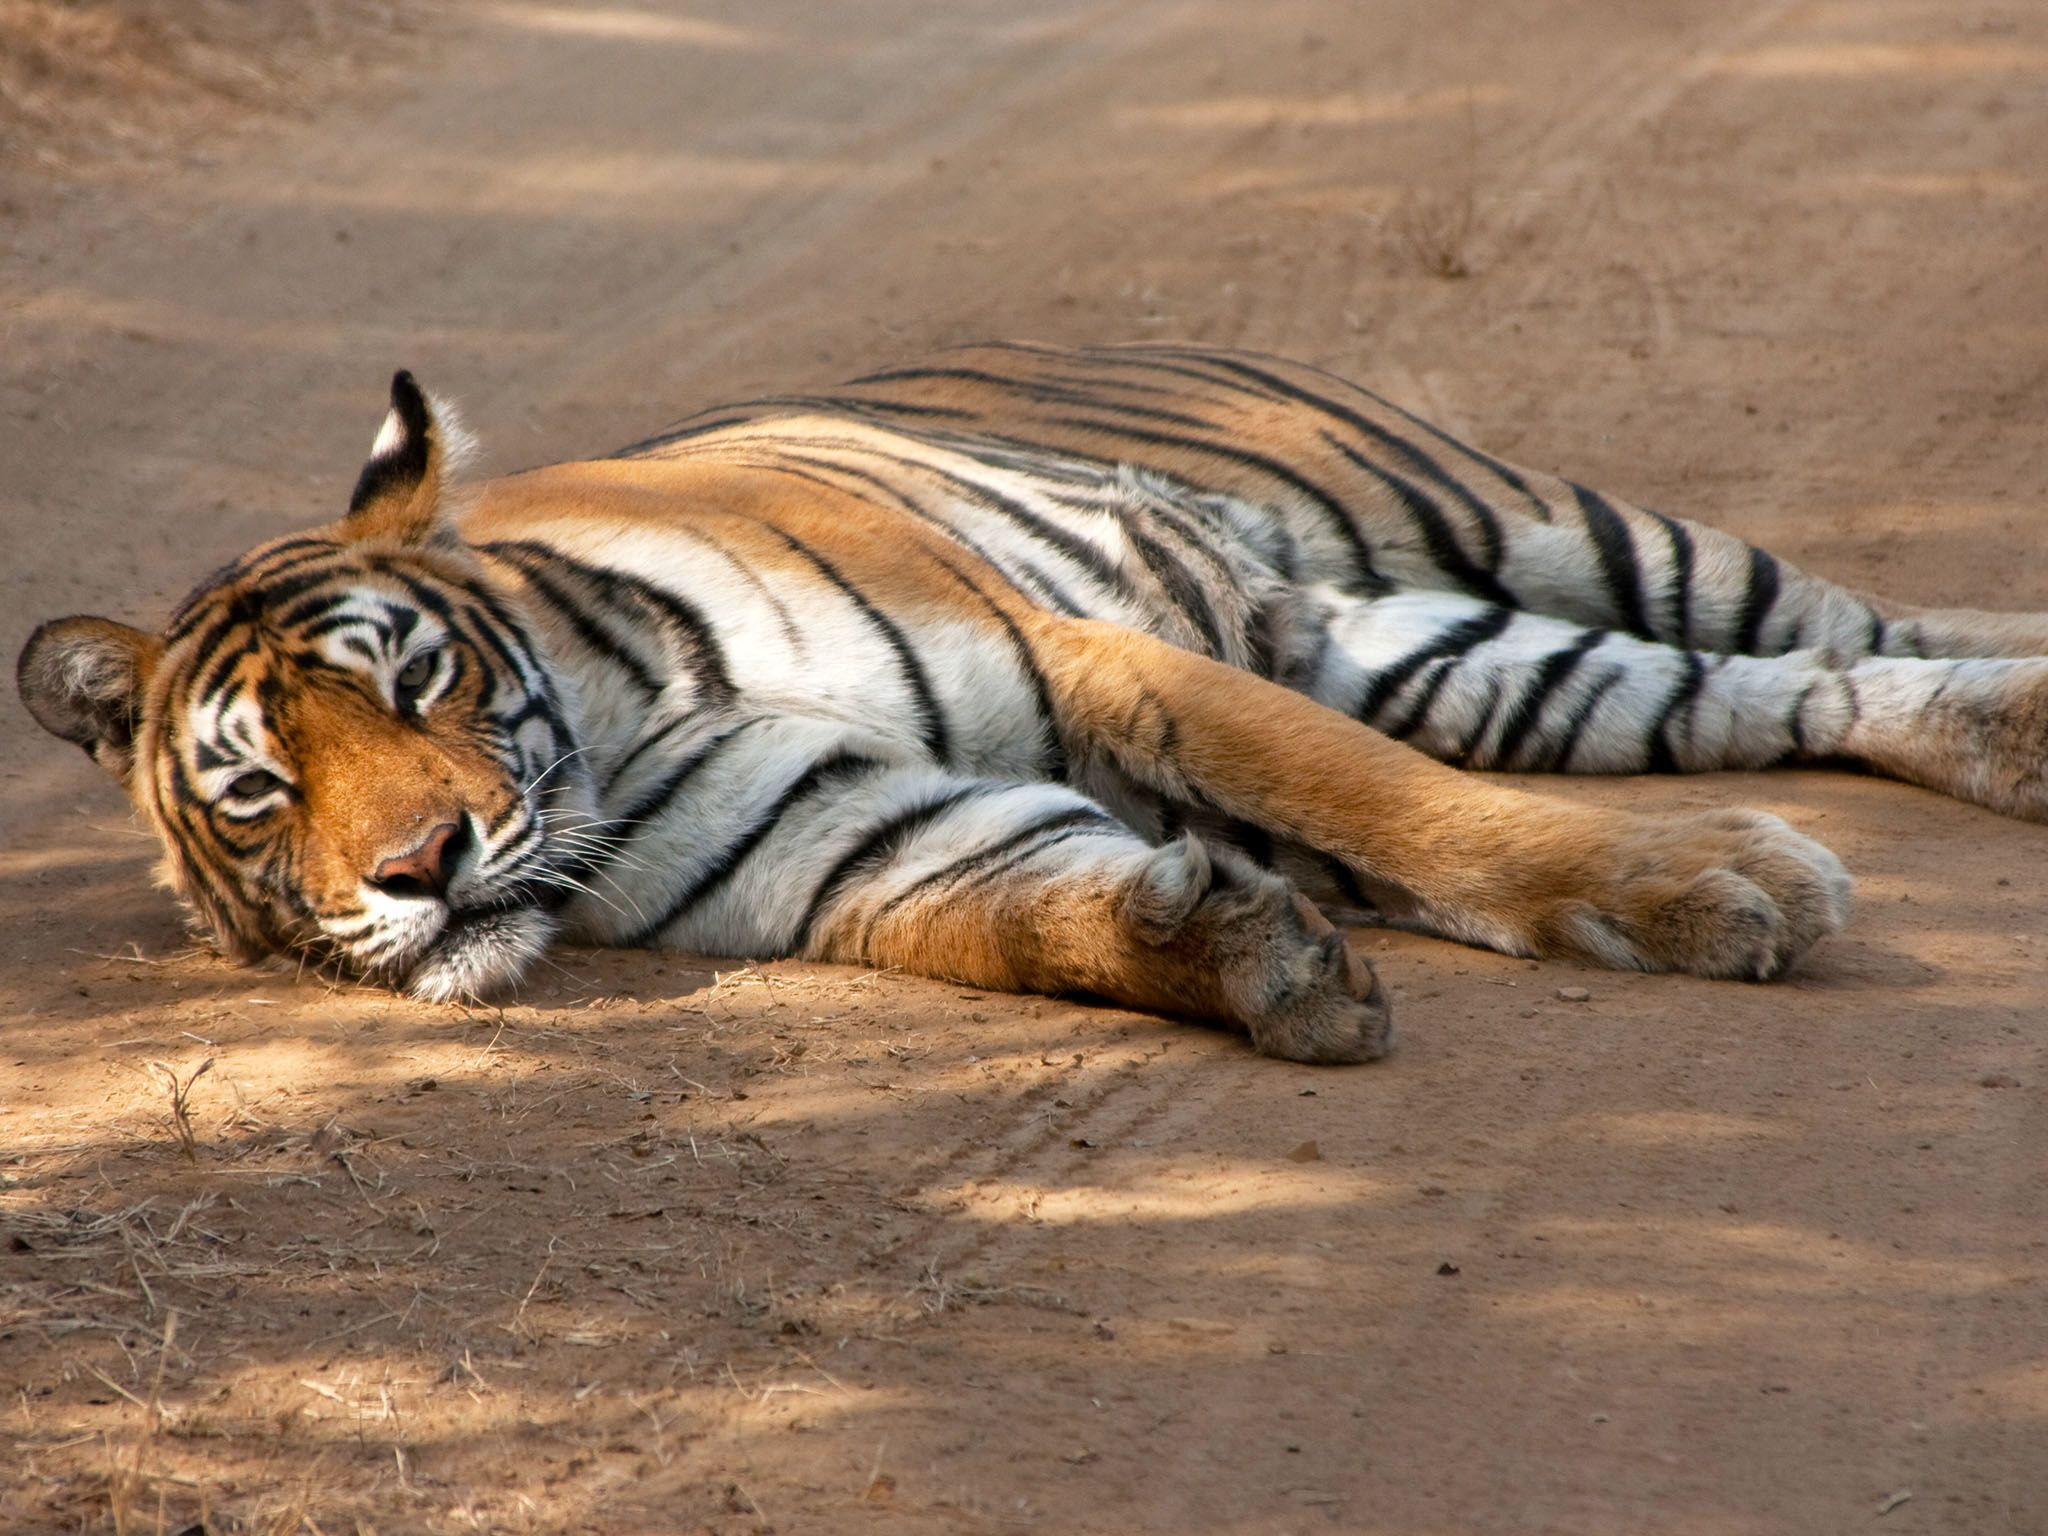 Ranthambhore National Park, Rajasthan, India: A tiger lays on a dirt track in Ranthambhore... [Photo of the day - 七月 2016]